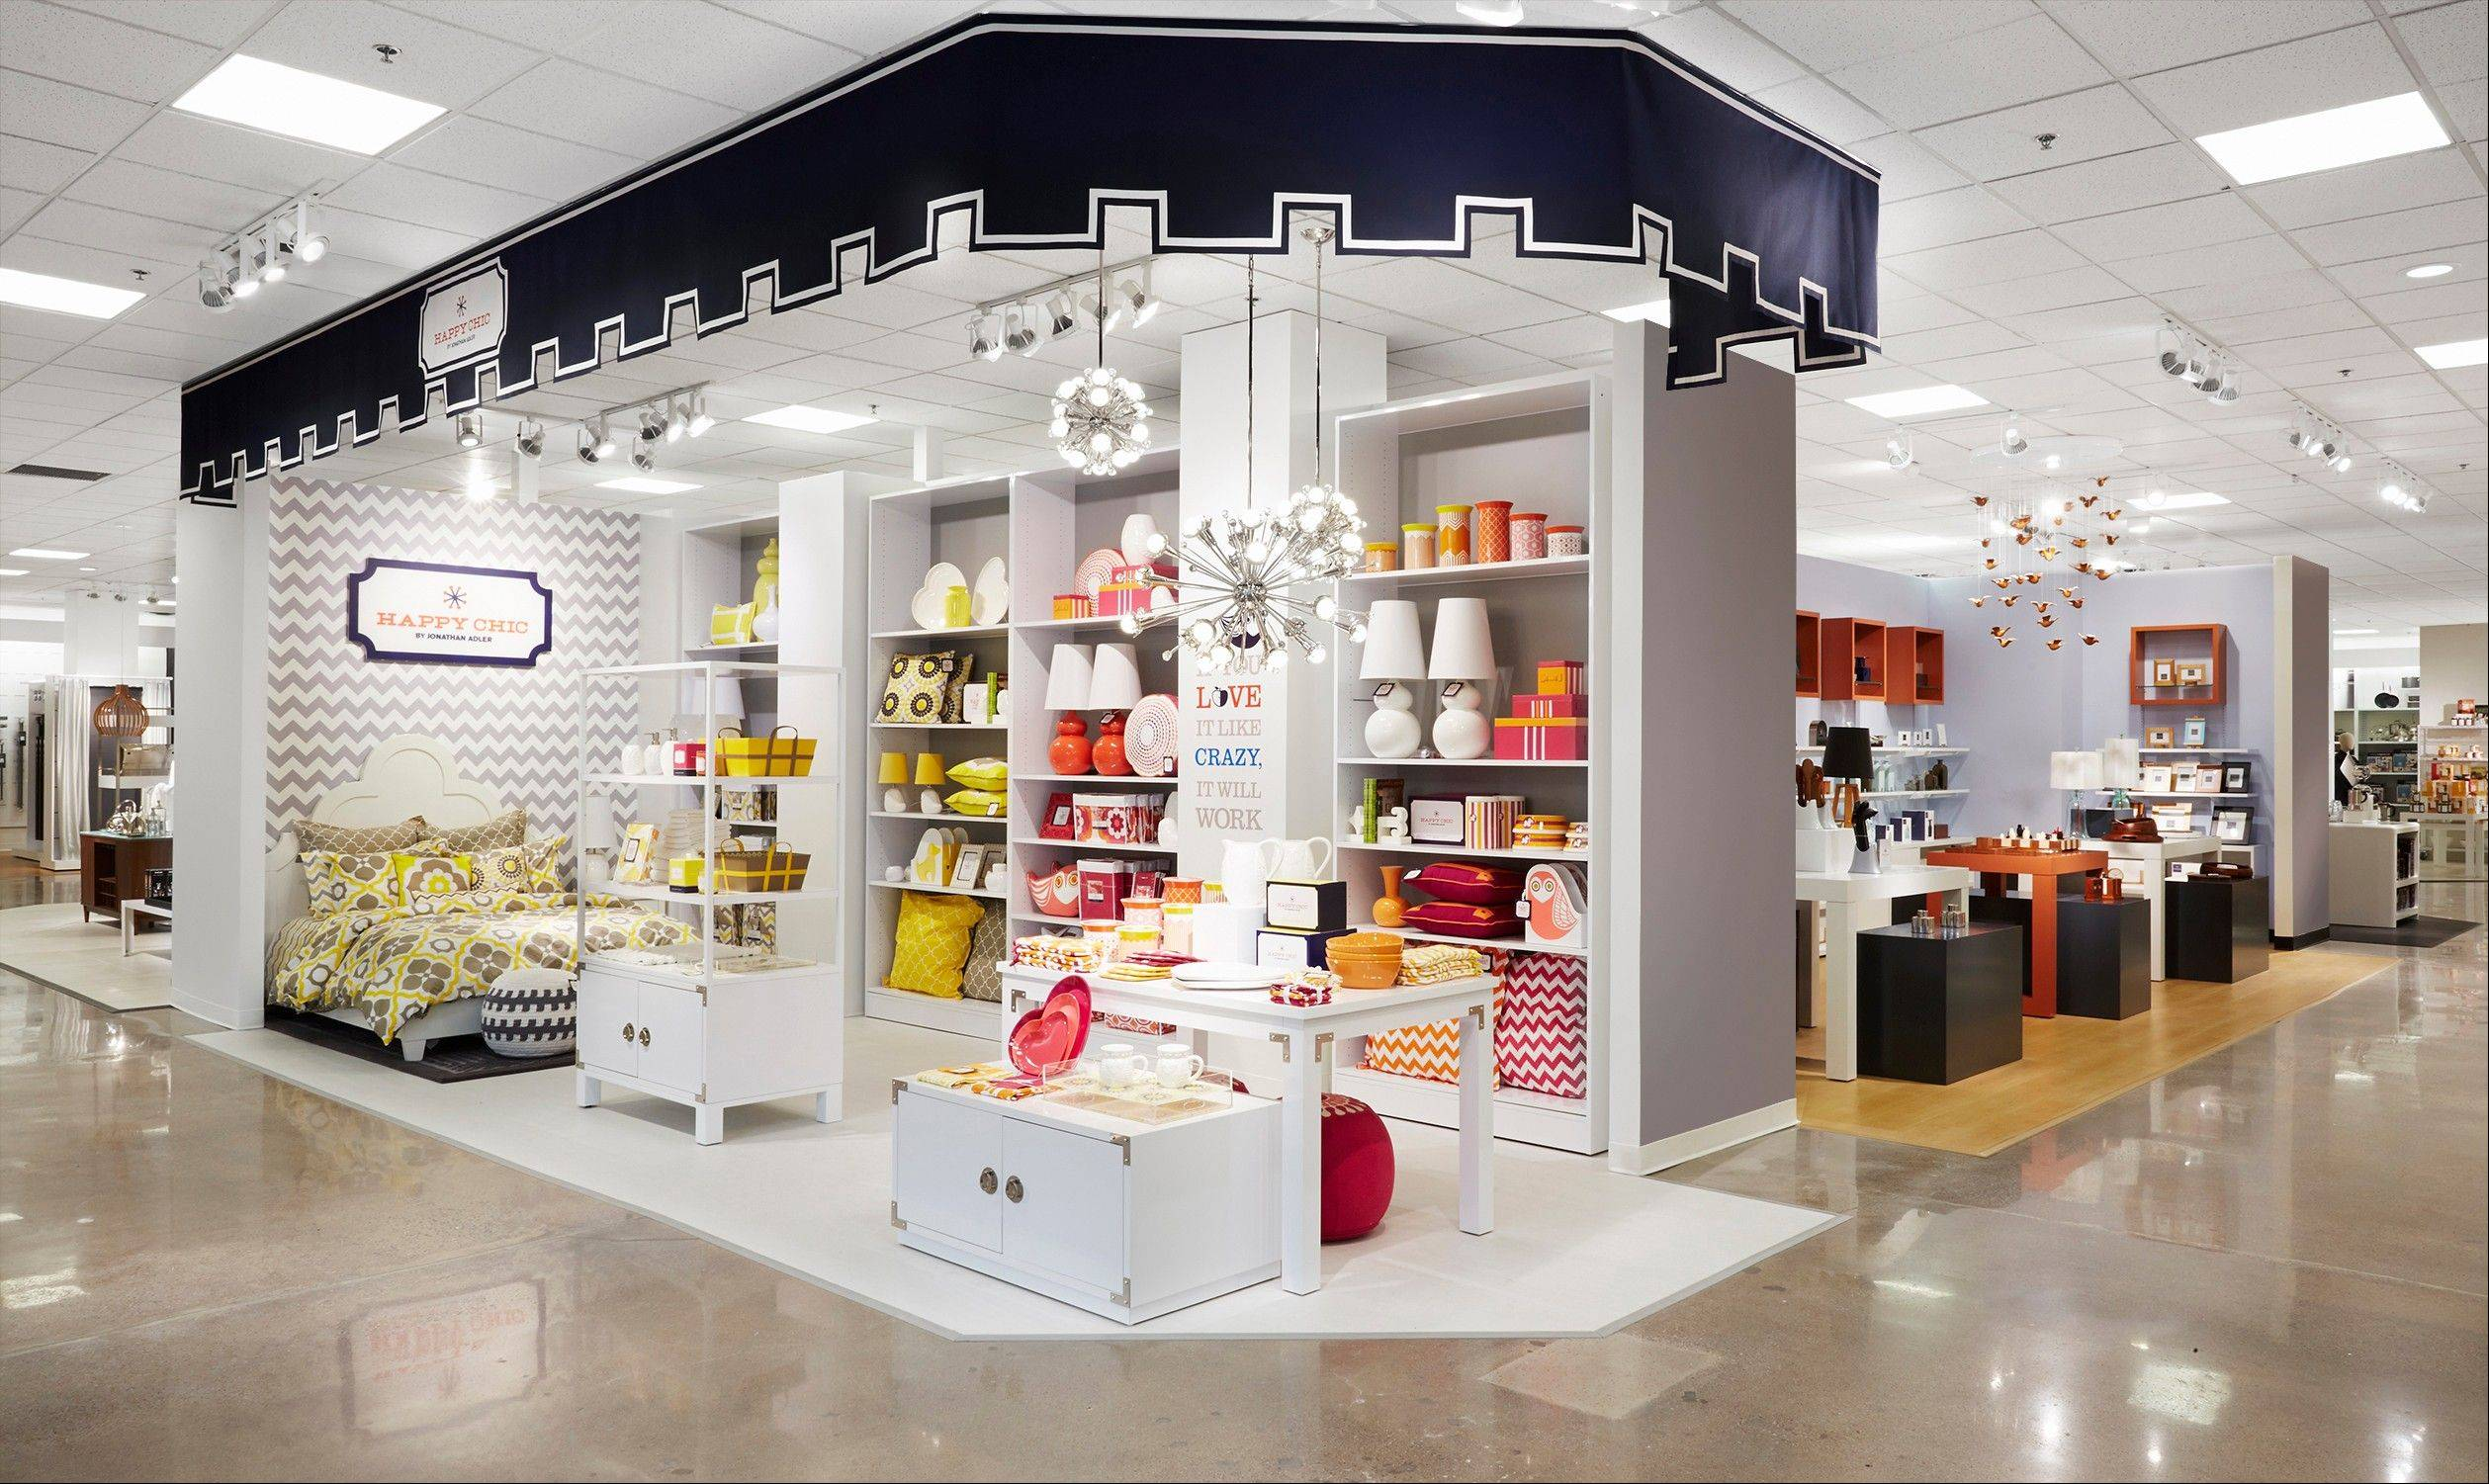 This undated image provided by J.C Penney shows a design for a new Jonathan Adler section in the home area of the department store. The struggling department store chain is set to unveil Friday an overhauled home area that will feature a string of shops filled with such items as bright blue geometric-patterned pillows, stylish stainless steel tea kettles and sleek oak coffee tables.